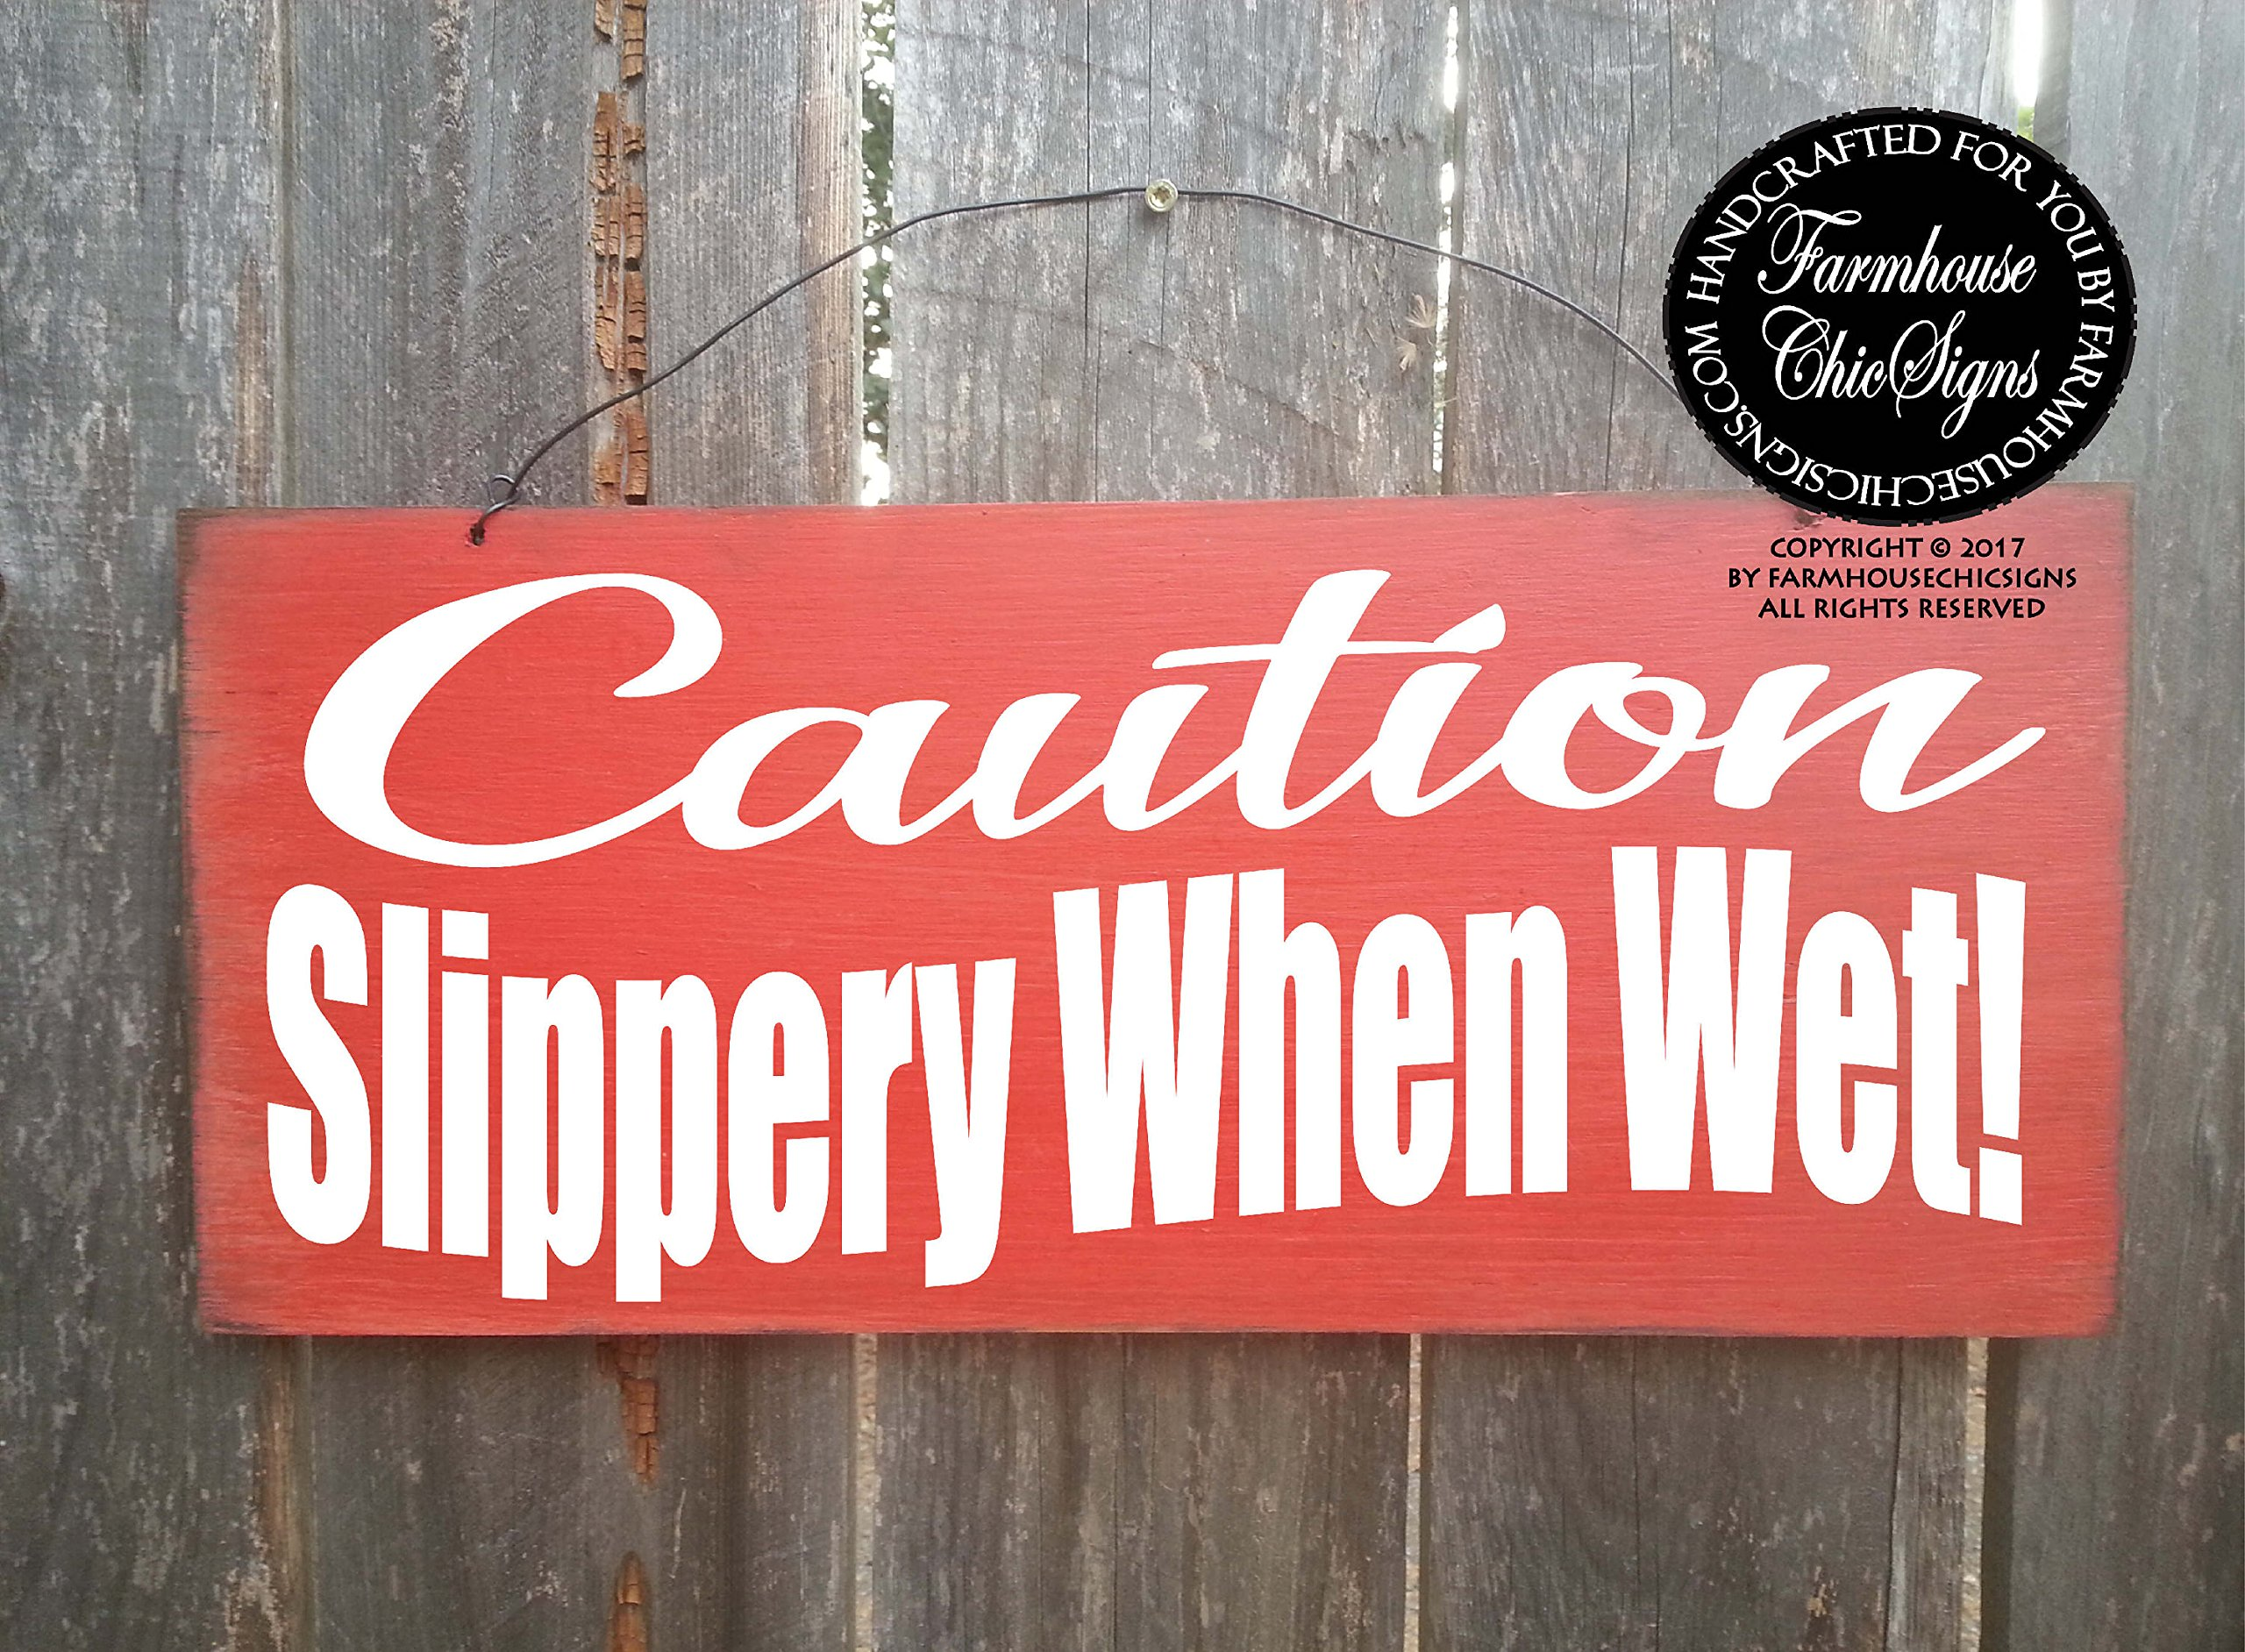 imouSde Swimming Pool Signs,Swimming Pool Swimming Gifts Pool Sign, Caution Sign, Slippery When Wet Pool Safety Pool Rules Pool Decor by imouSde